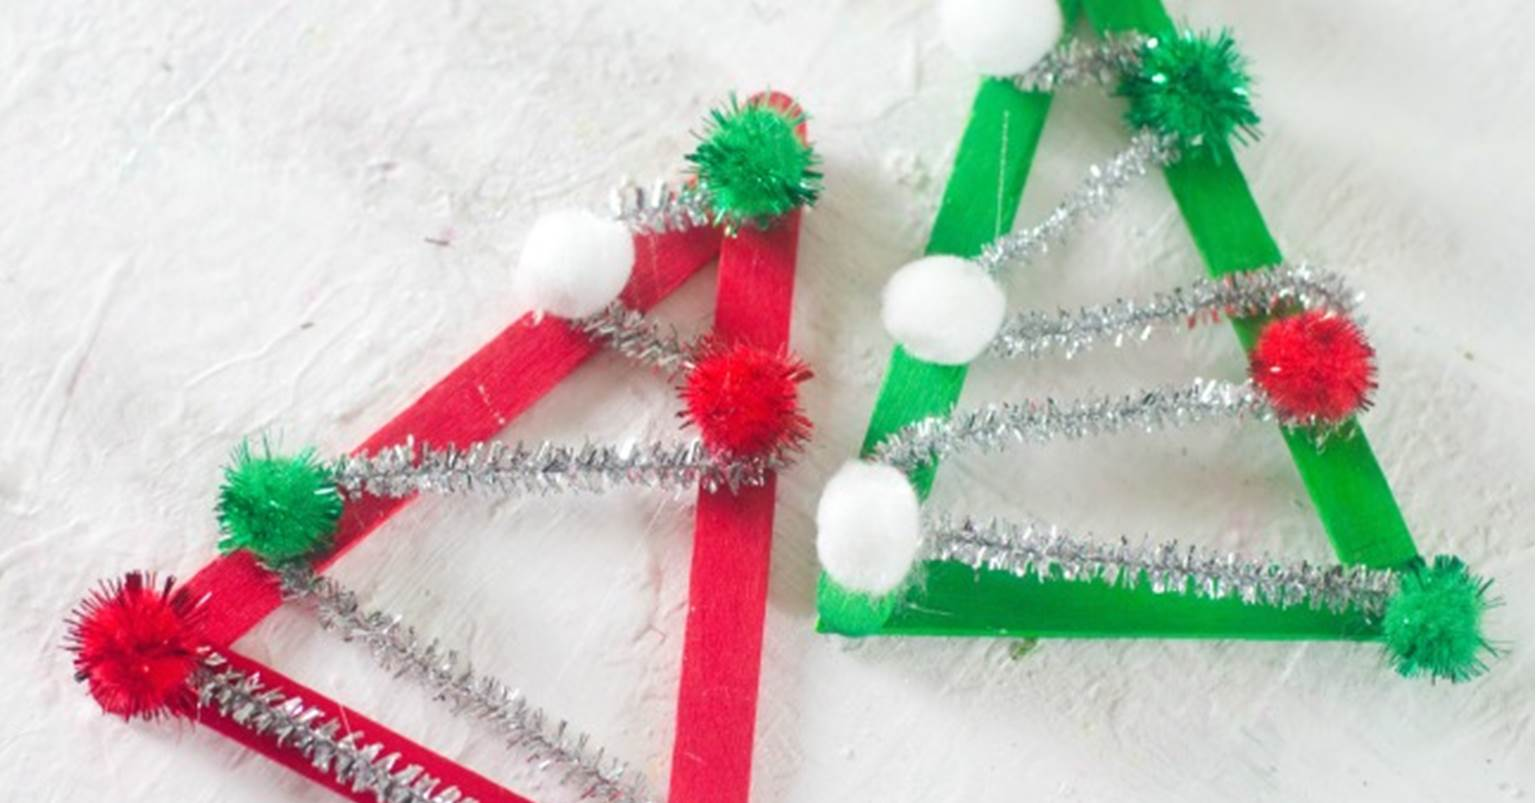 Popsicle Stick Christmas Tree Ornaments.Christmas Tree Popsicle Stick Ornament